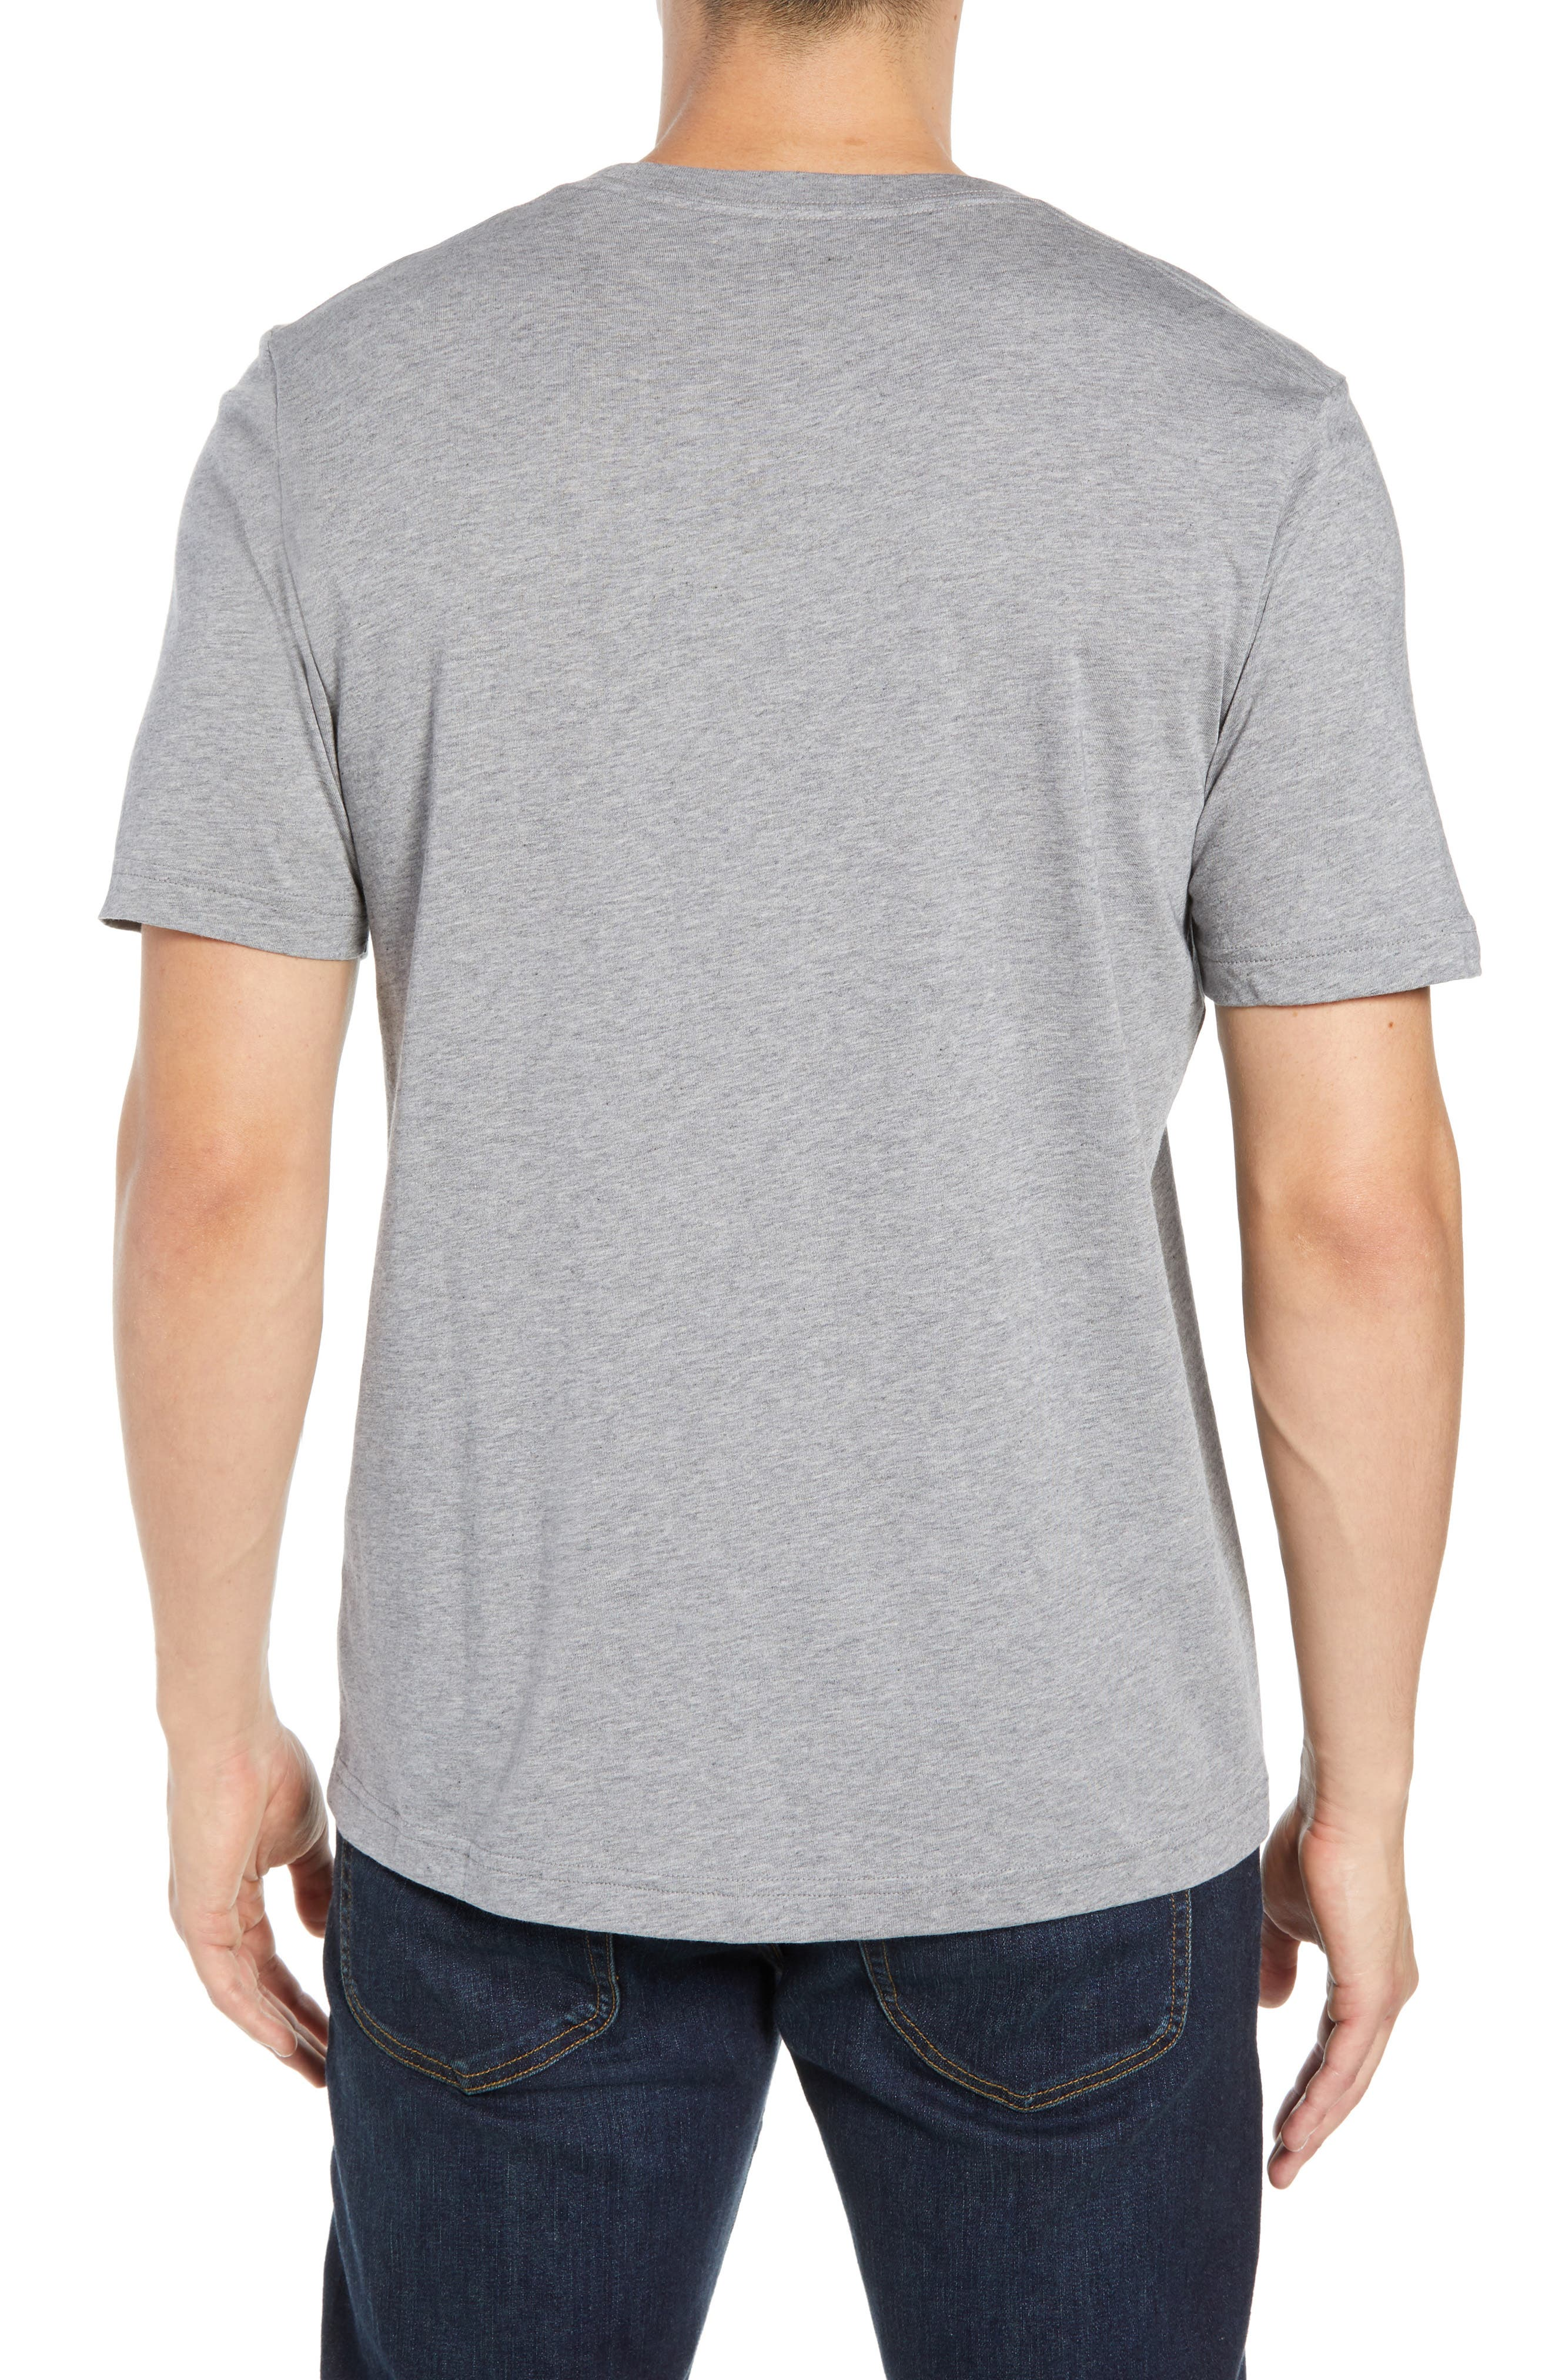 Airheads T-Shirt,                             Alternate thumbnail 2, color,                             HEATHER GREY